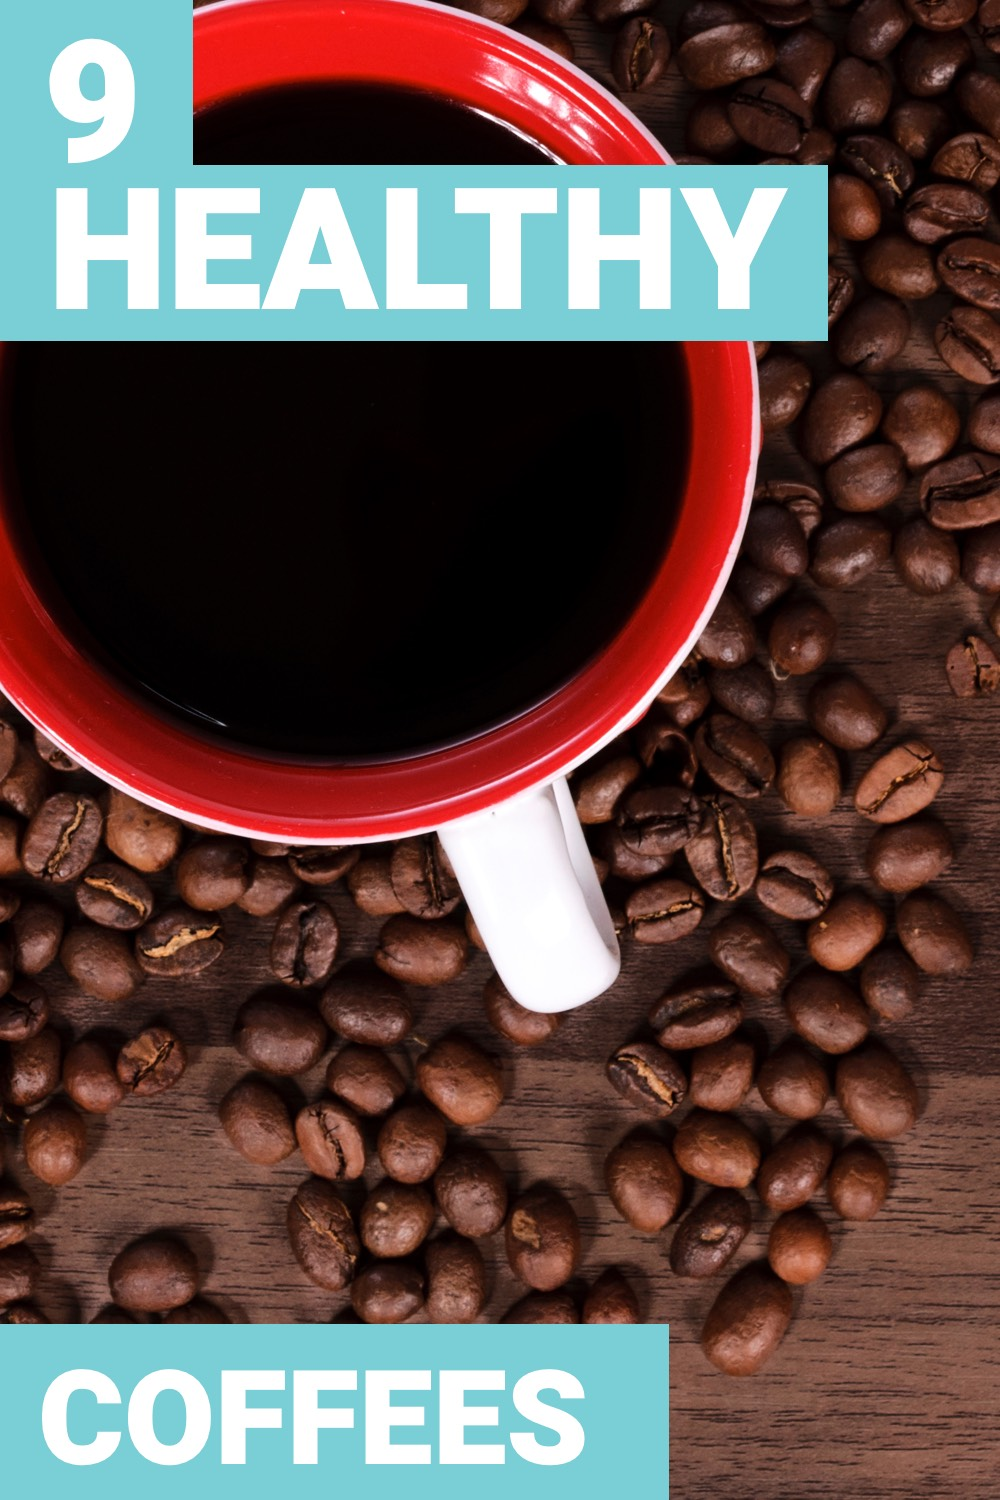 Is coffee healthy? Here are 9 ways to make healthy coffee.